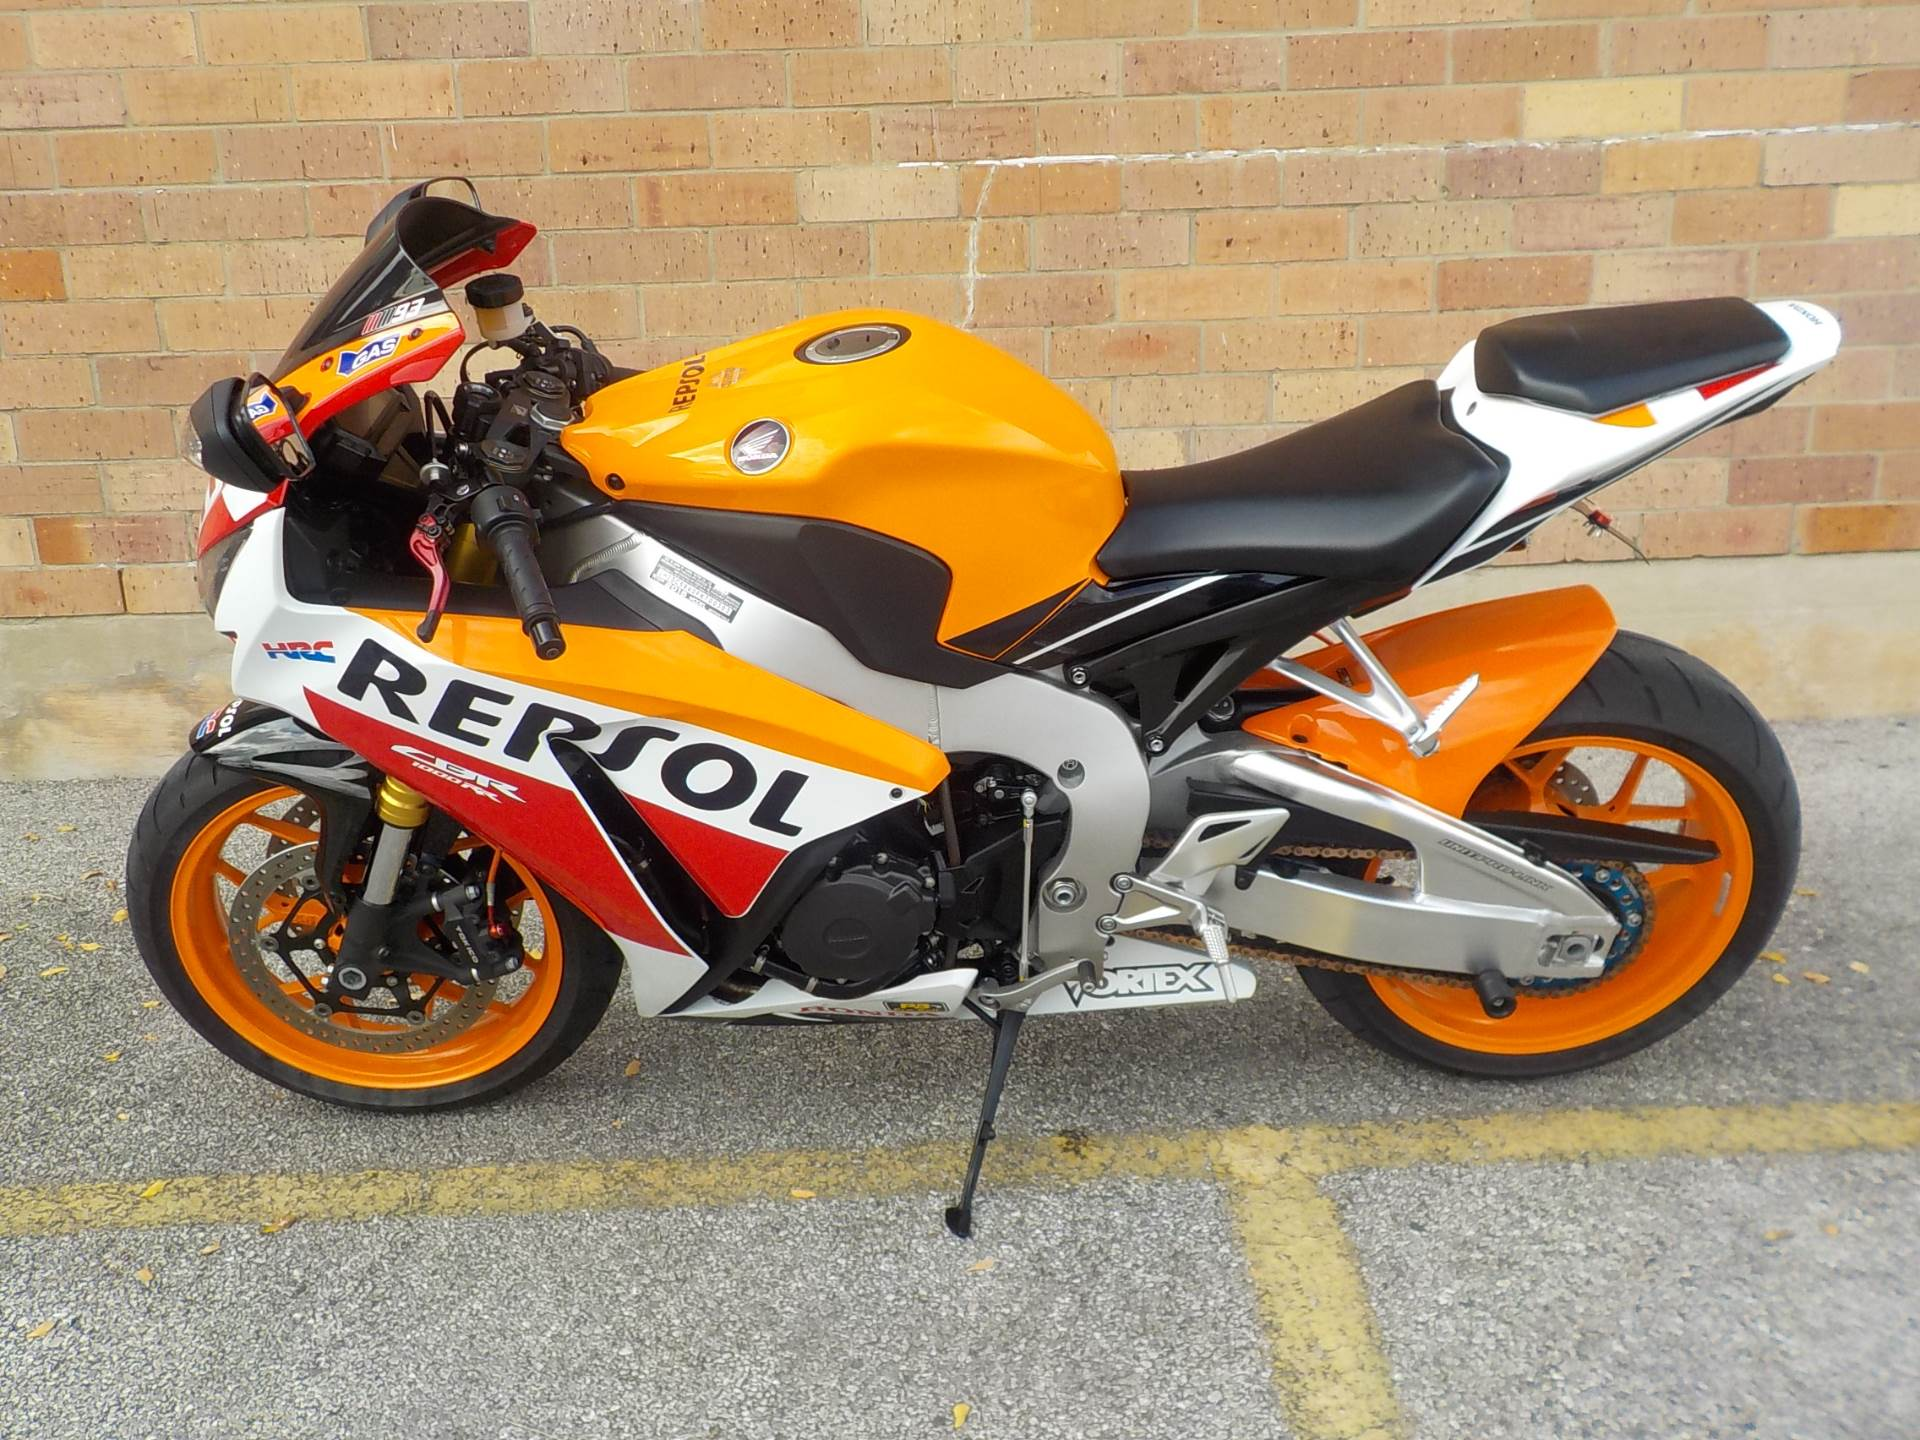 used 2015 honda cbr®1000rr motorcycles in san antonio, tx | stock